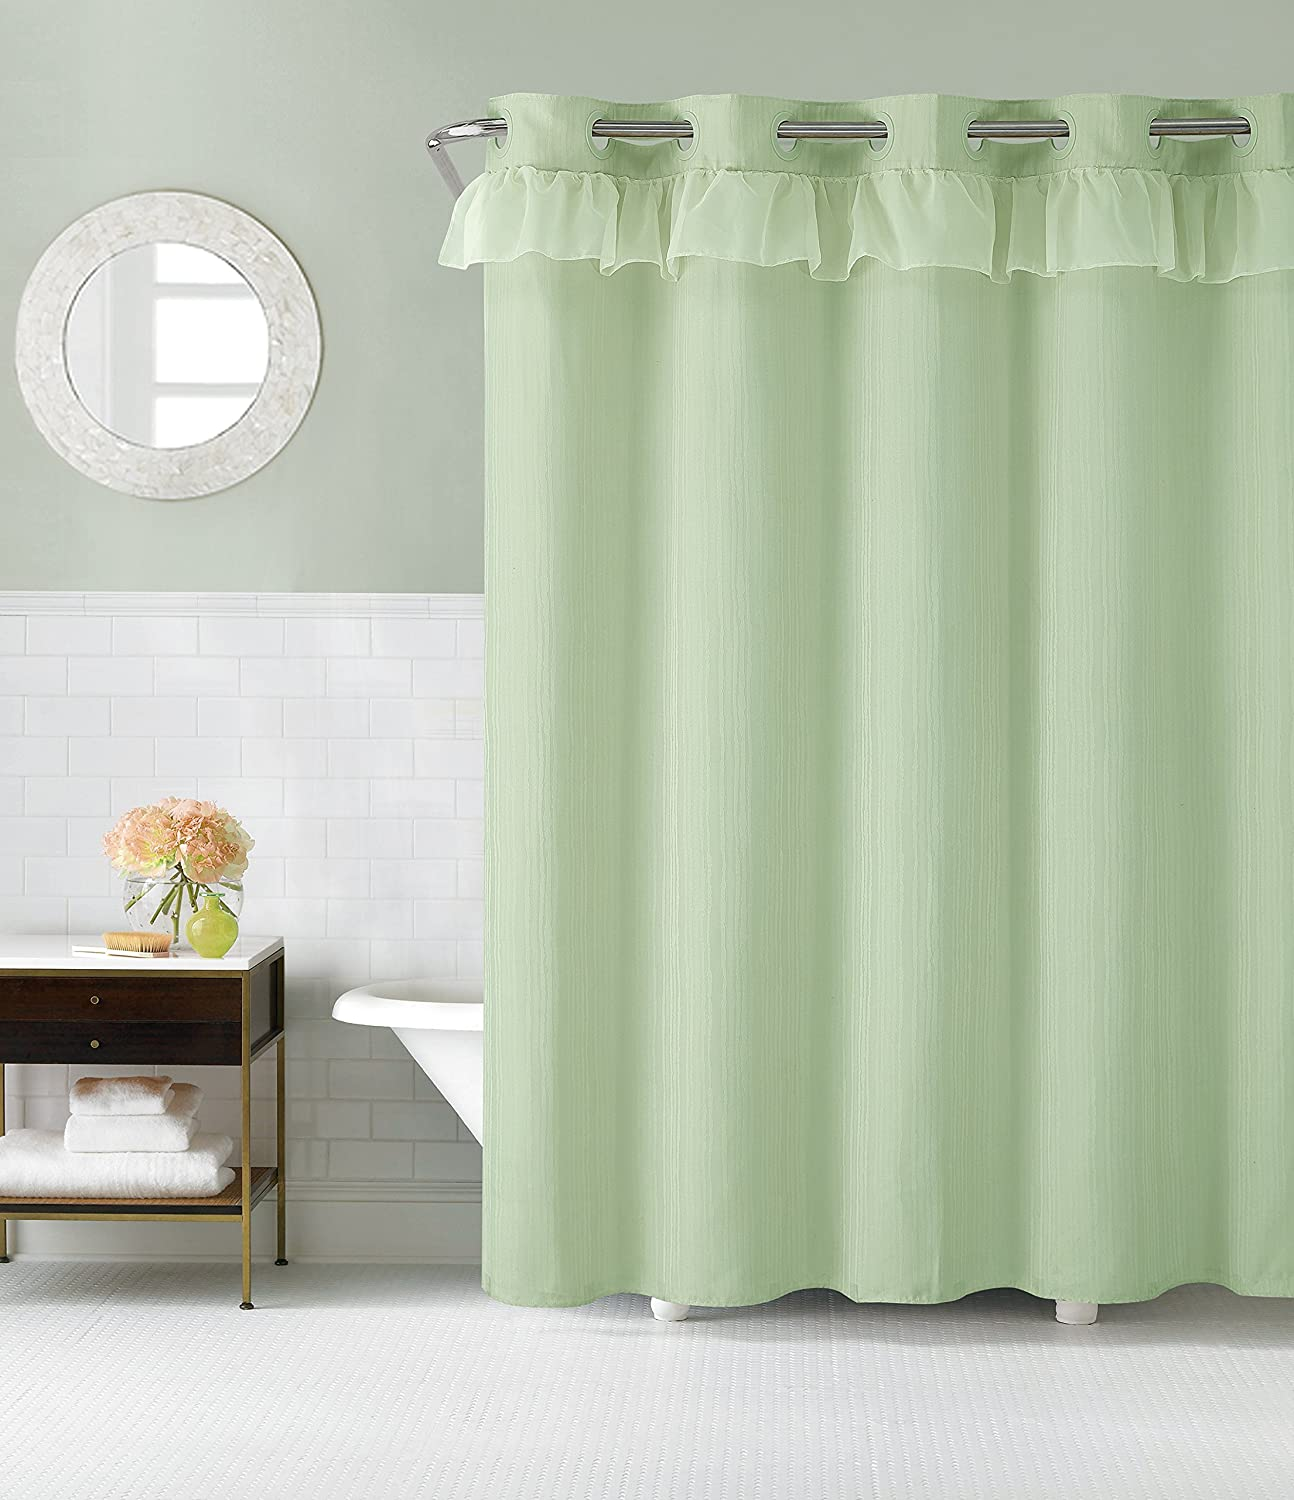 Hookless RBH29FC107 Waterfall Shower Curtain with PEVA Liner - Sage